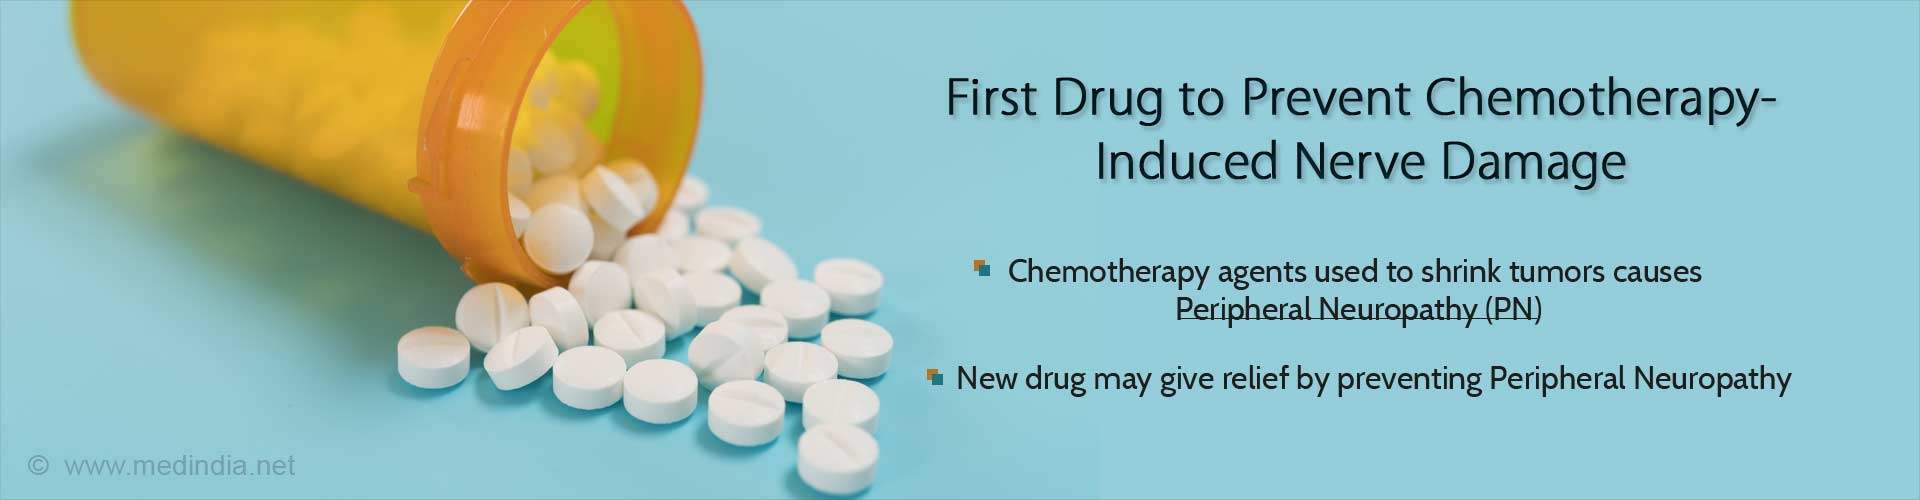 First Drug to Prevent Chemotherapy-induced nerve damage